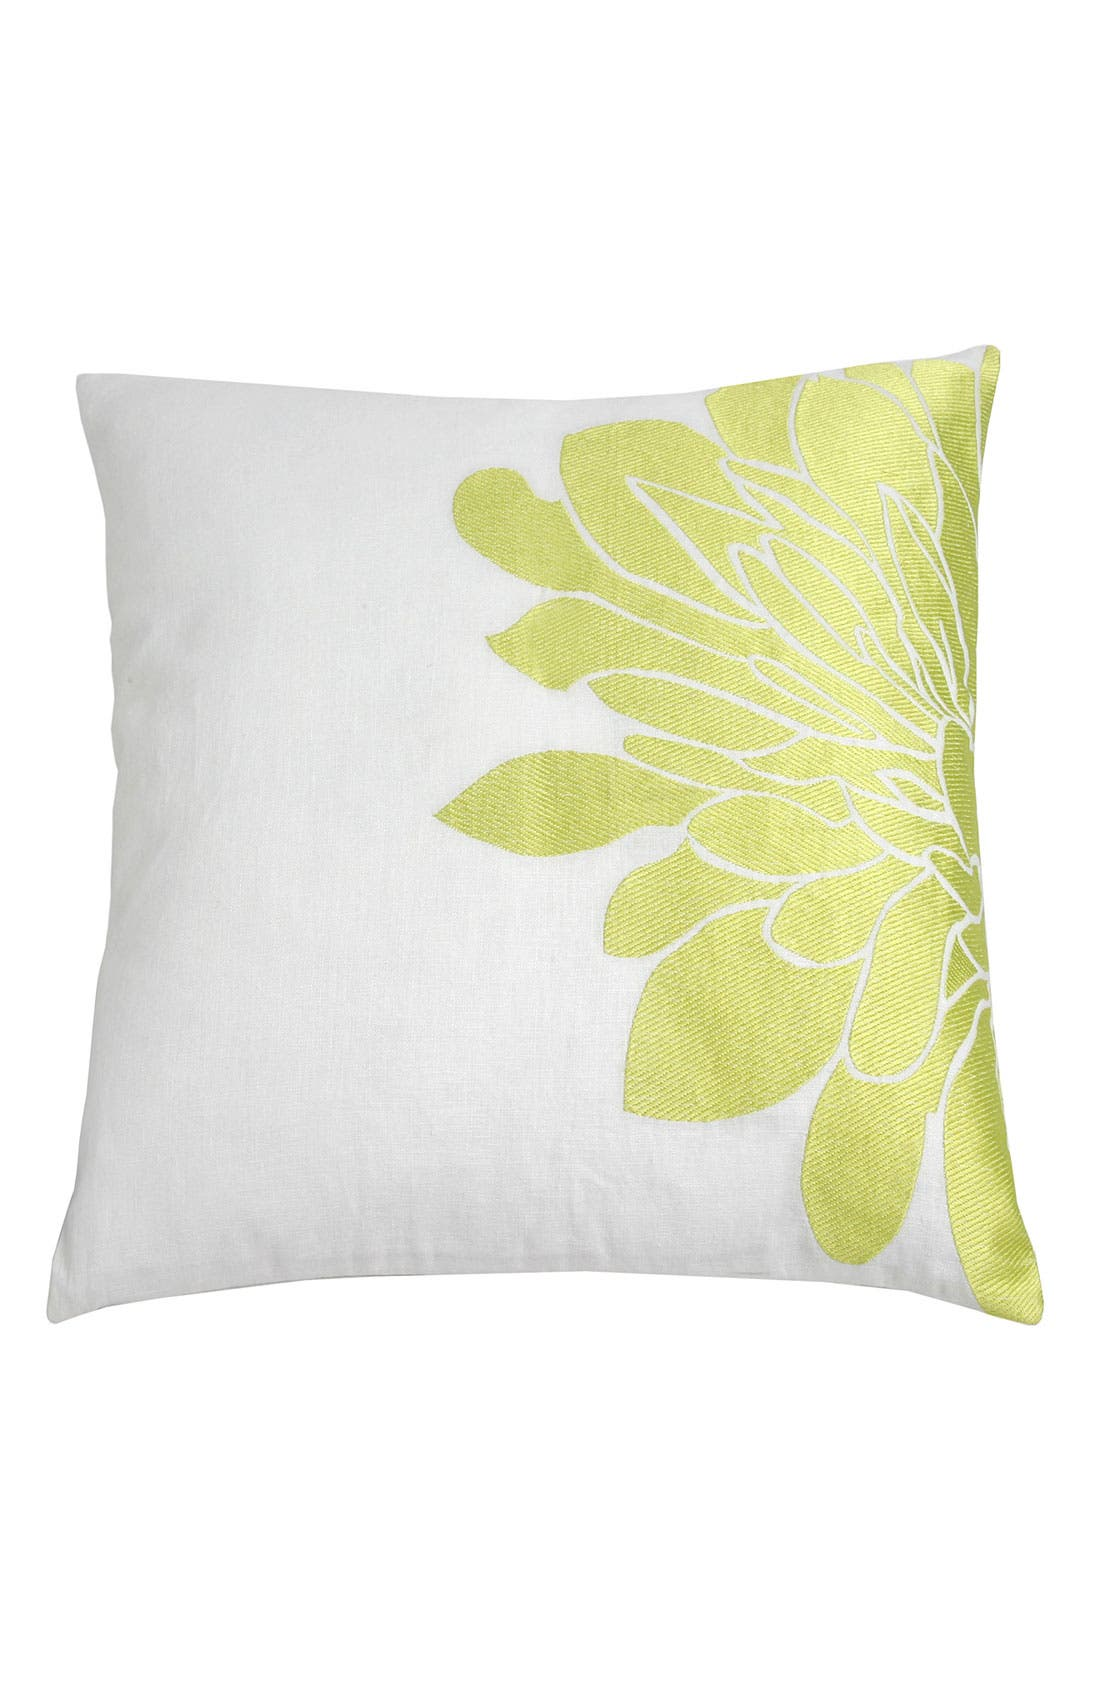 Alternate Image 1 Selected - Blissliving Home 'Gemini Citron' Pillow (Online Only)